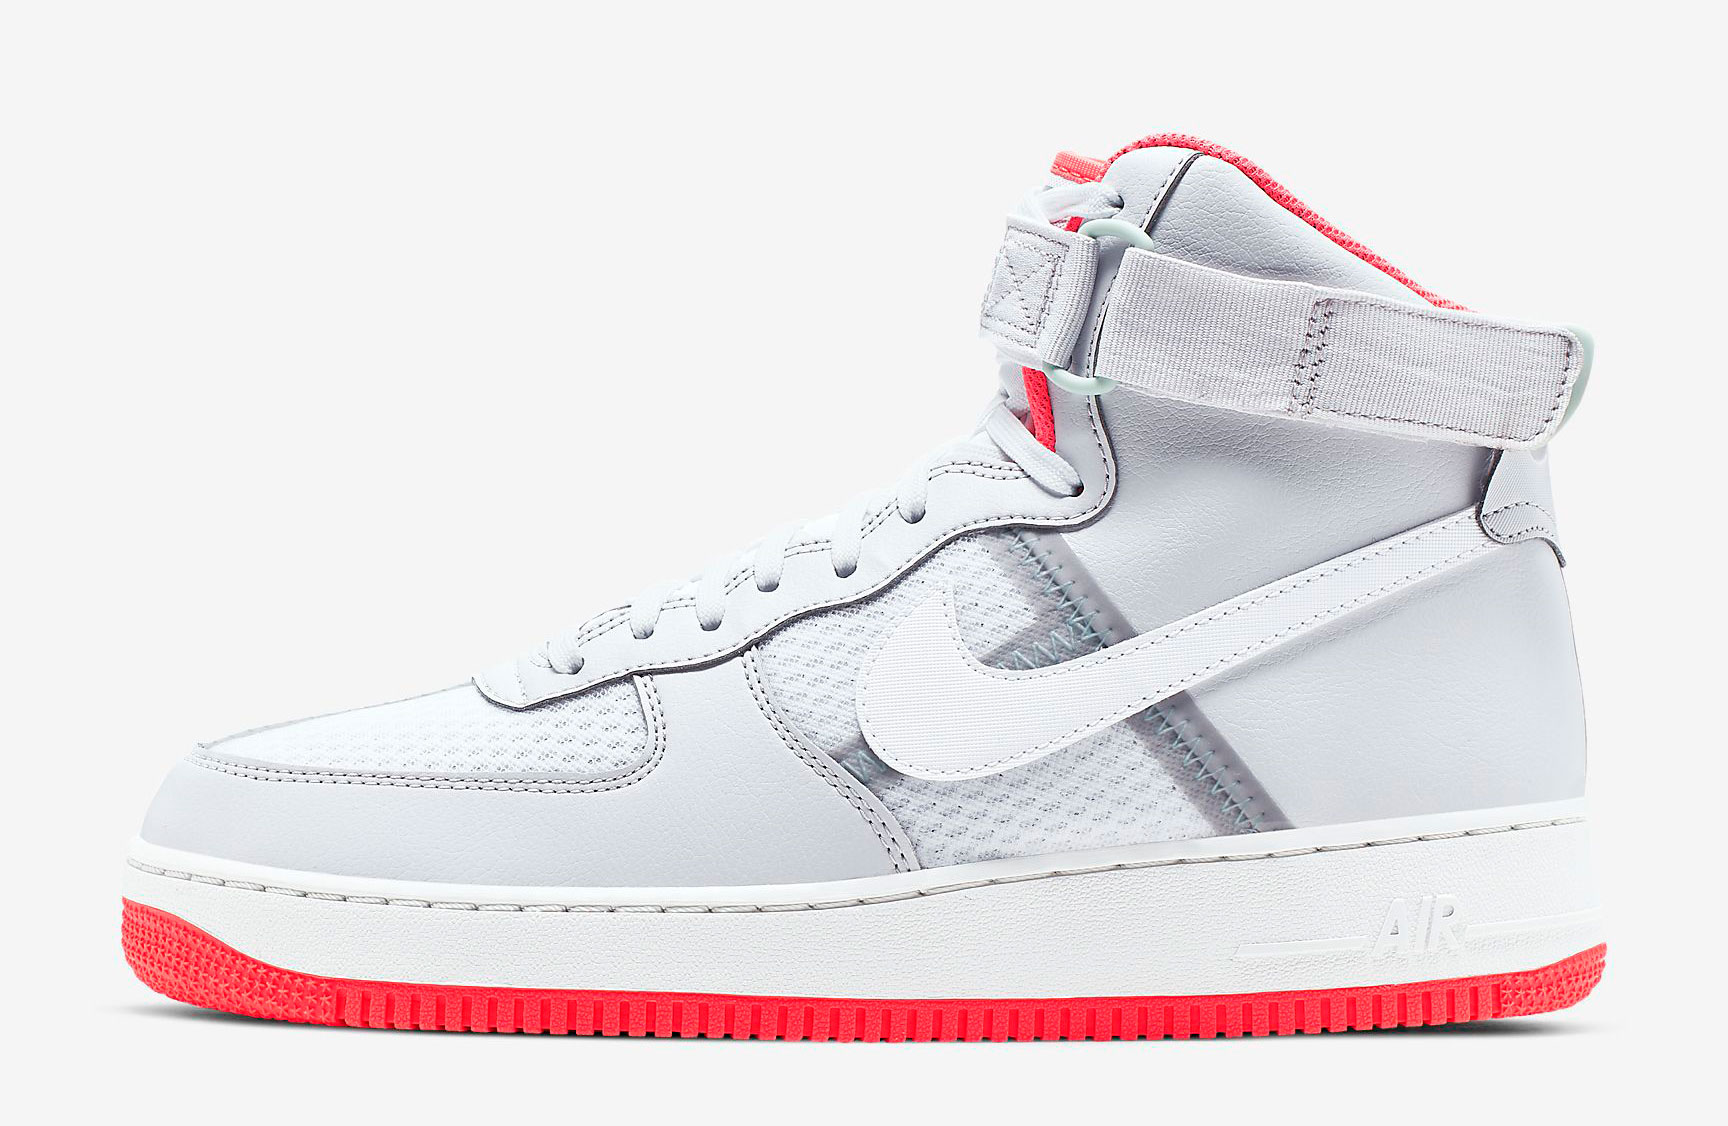 nike-air-force-1-high-white-vast-grey-crimson-teal-tint-release-date